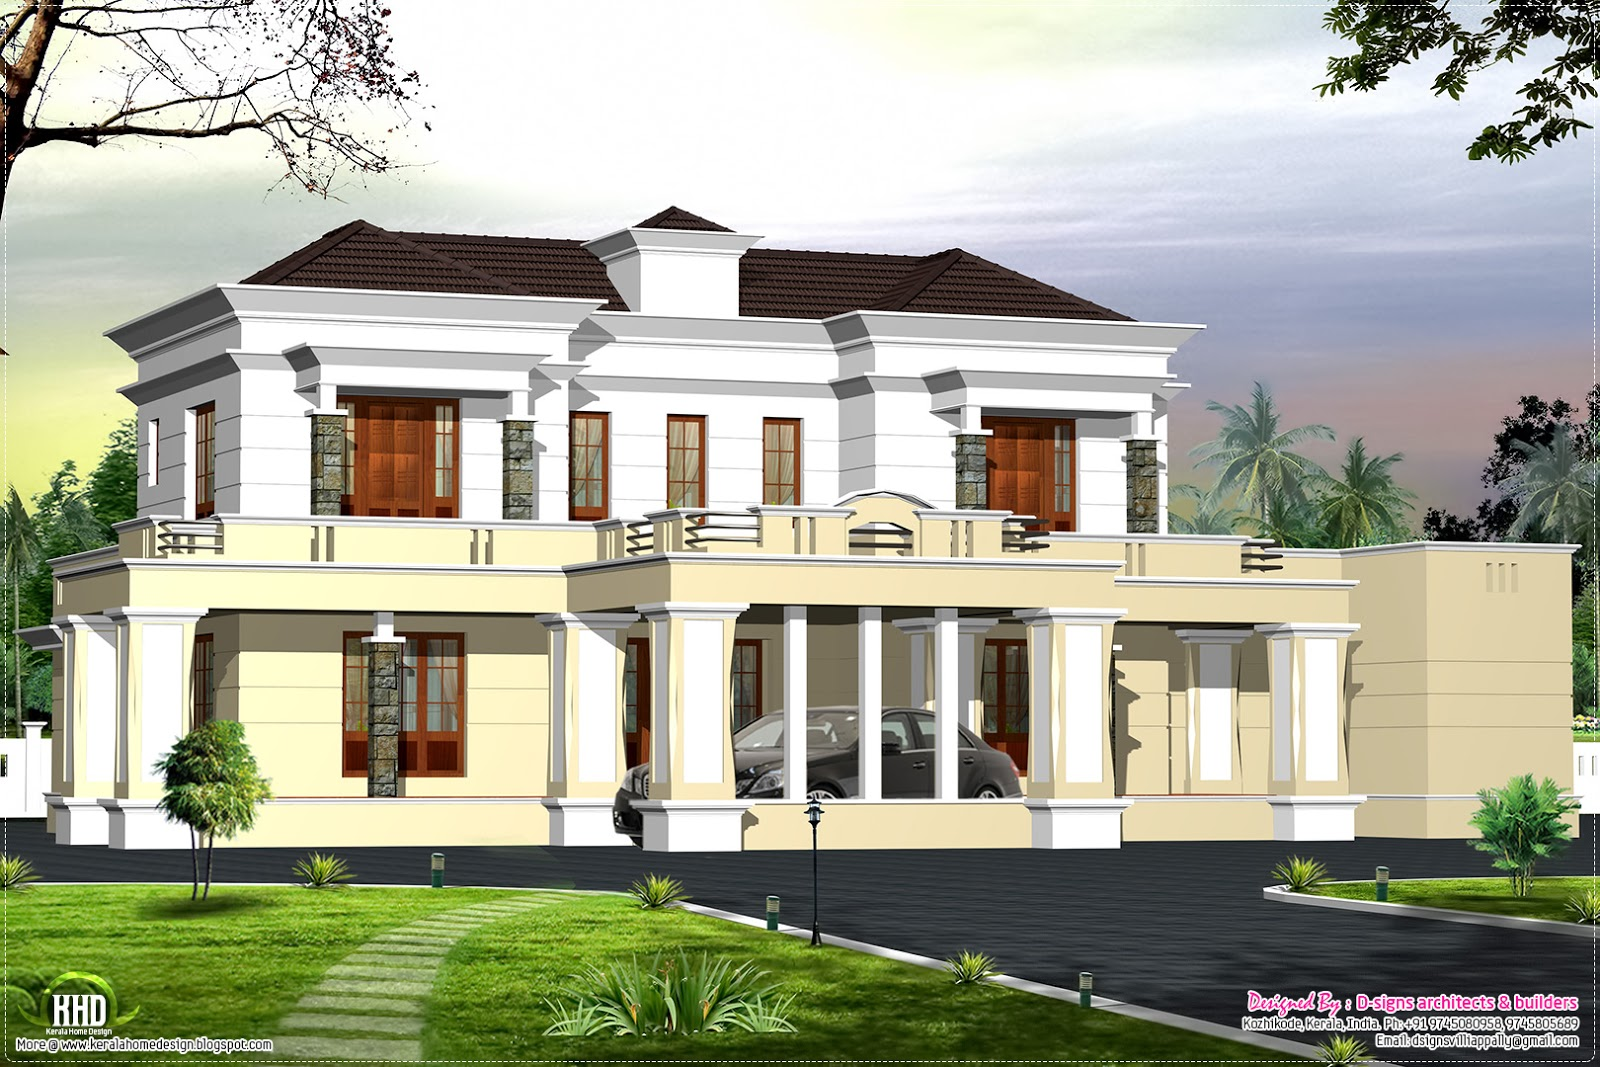 Victorian style luxury home design | House Design Plans